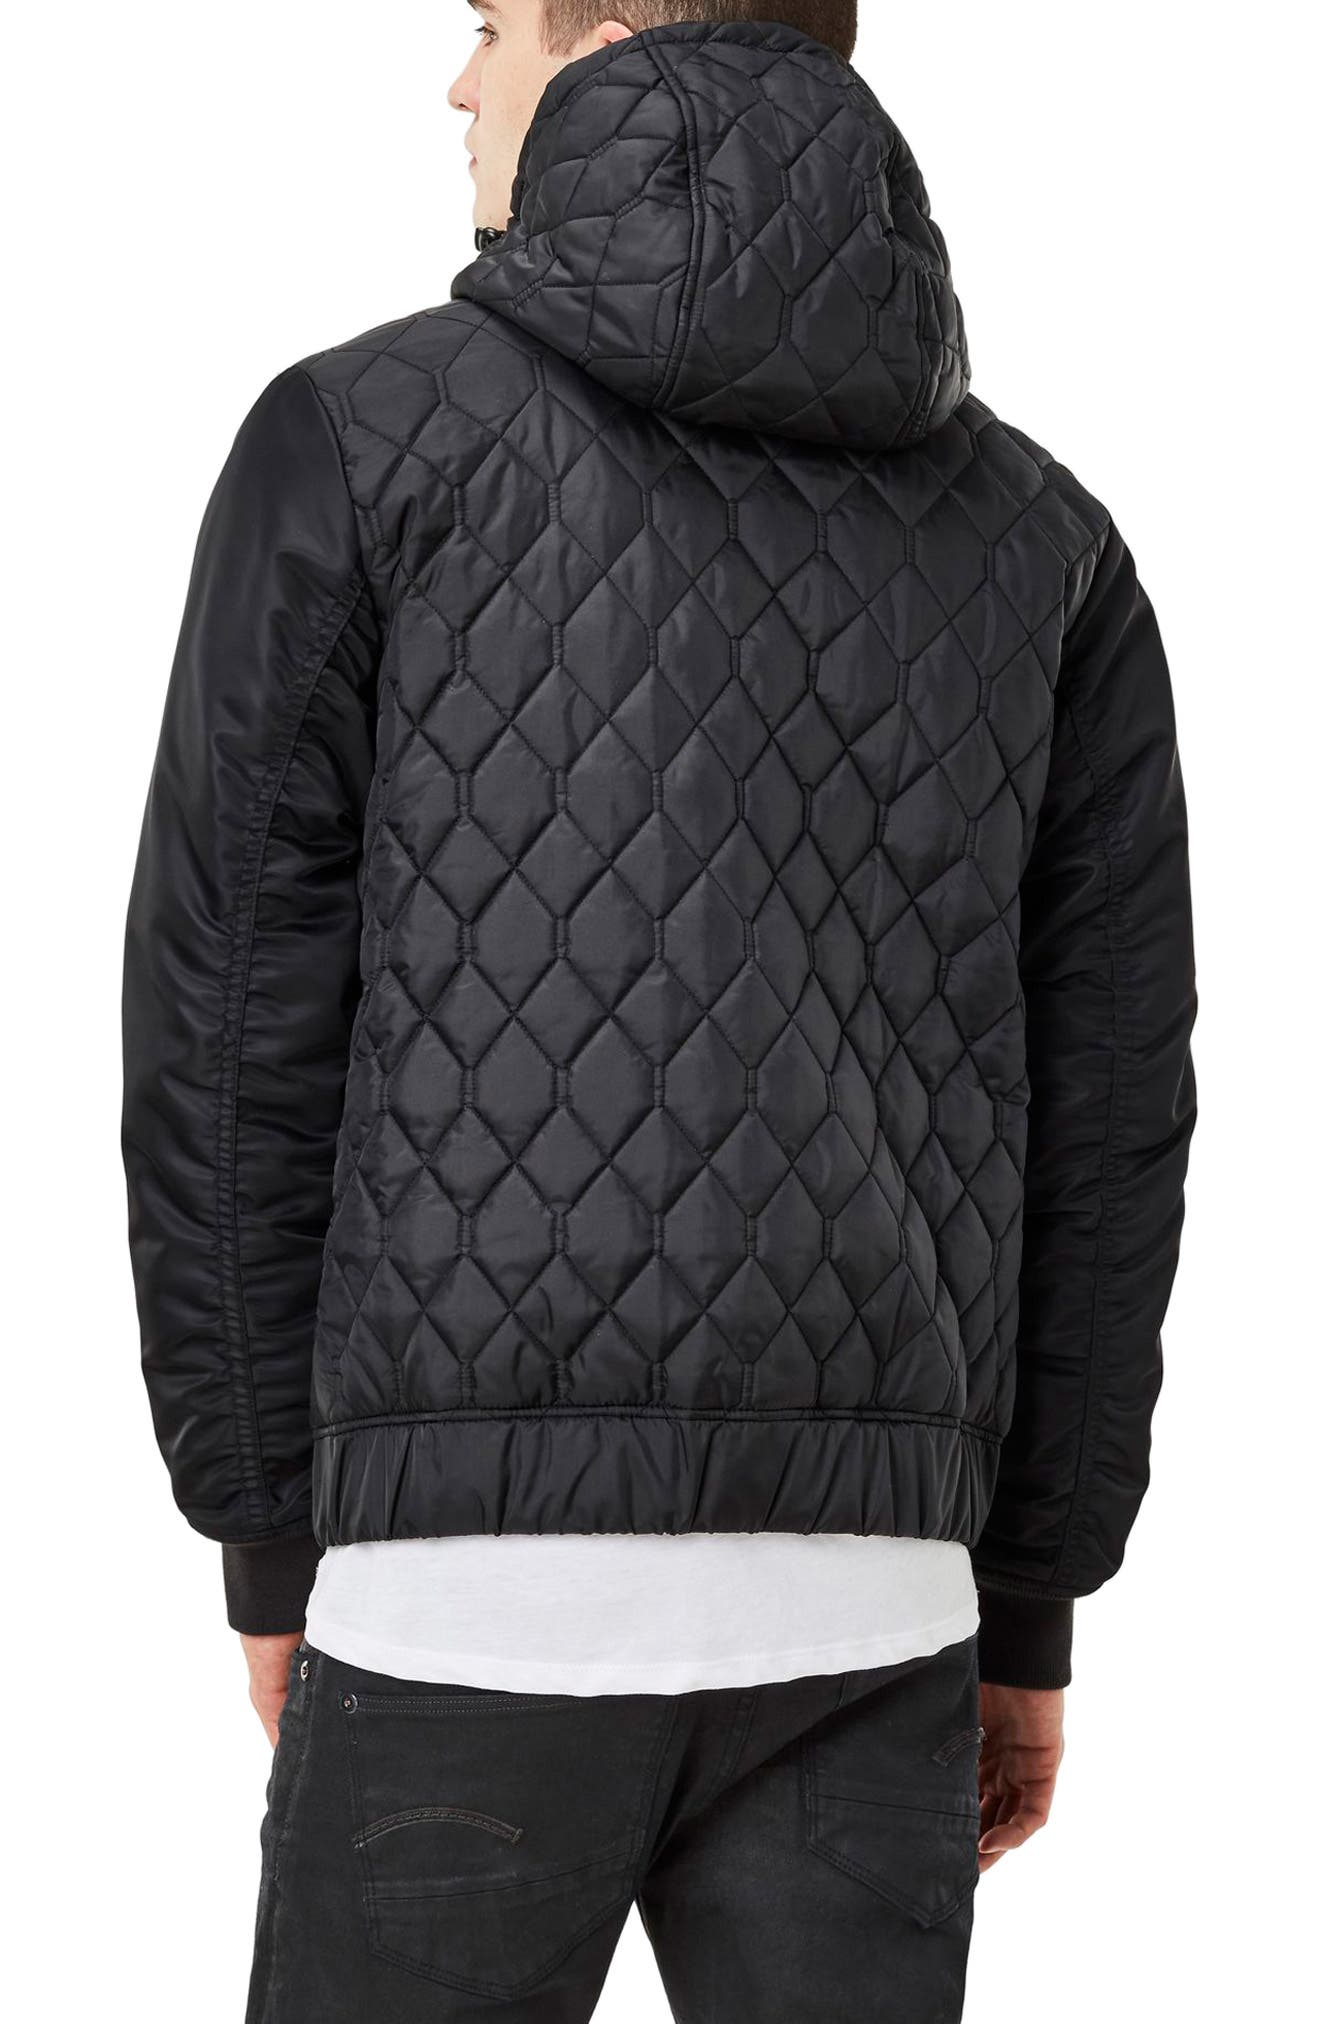 Meefic Hybrid Quilted Jacket,                             Alternate thumbnail 2, color,                             Black